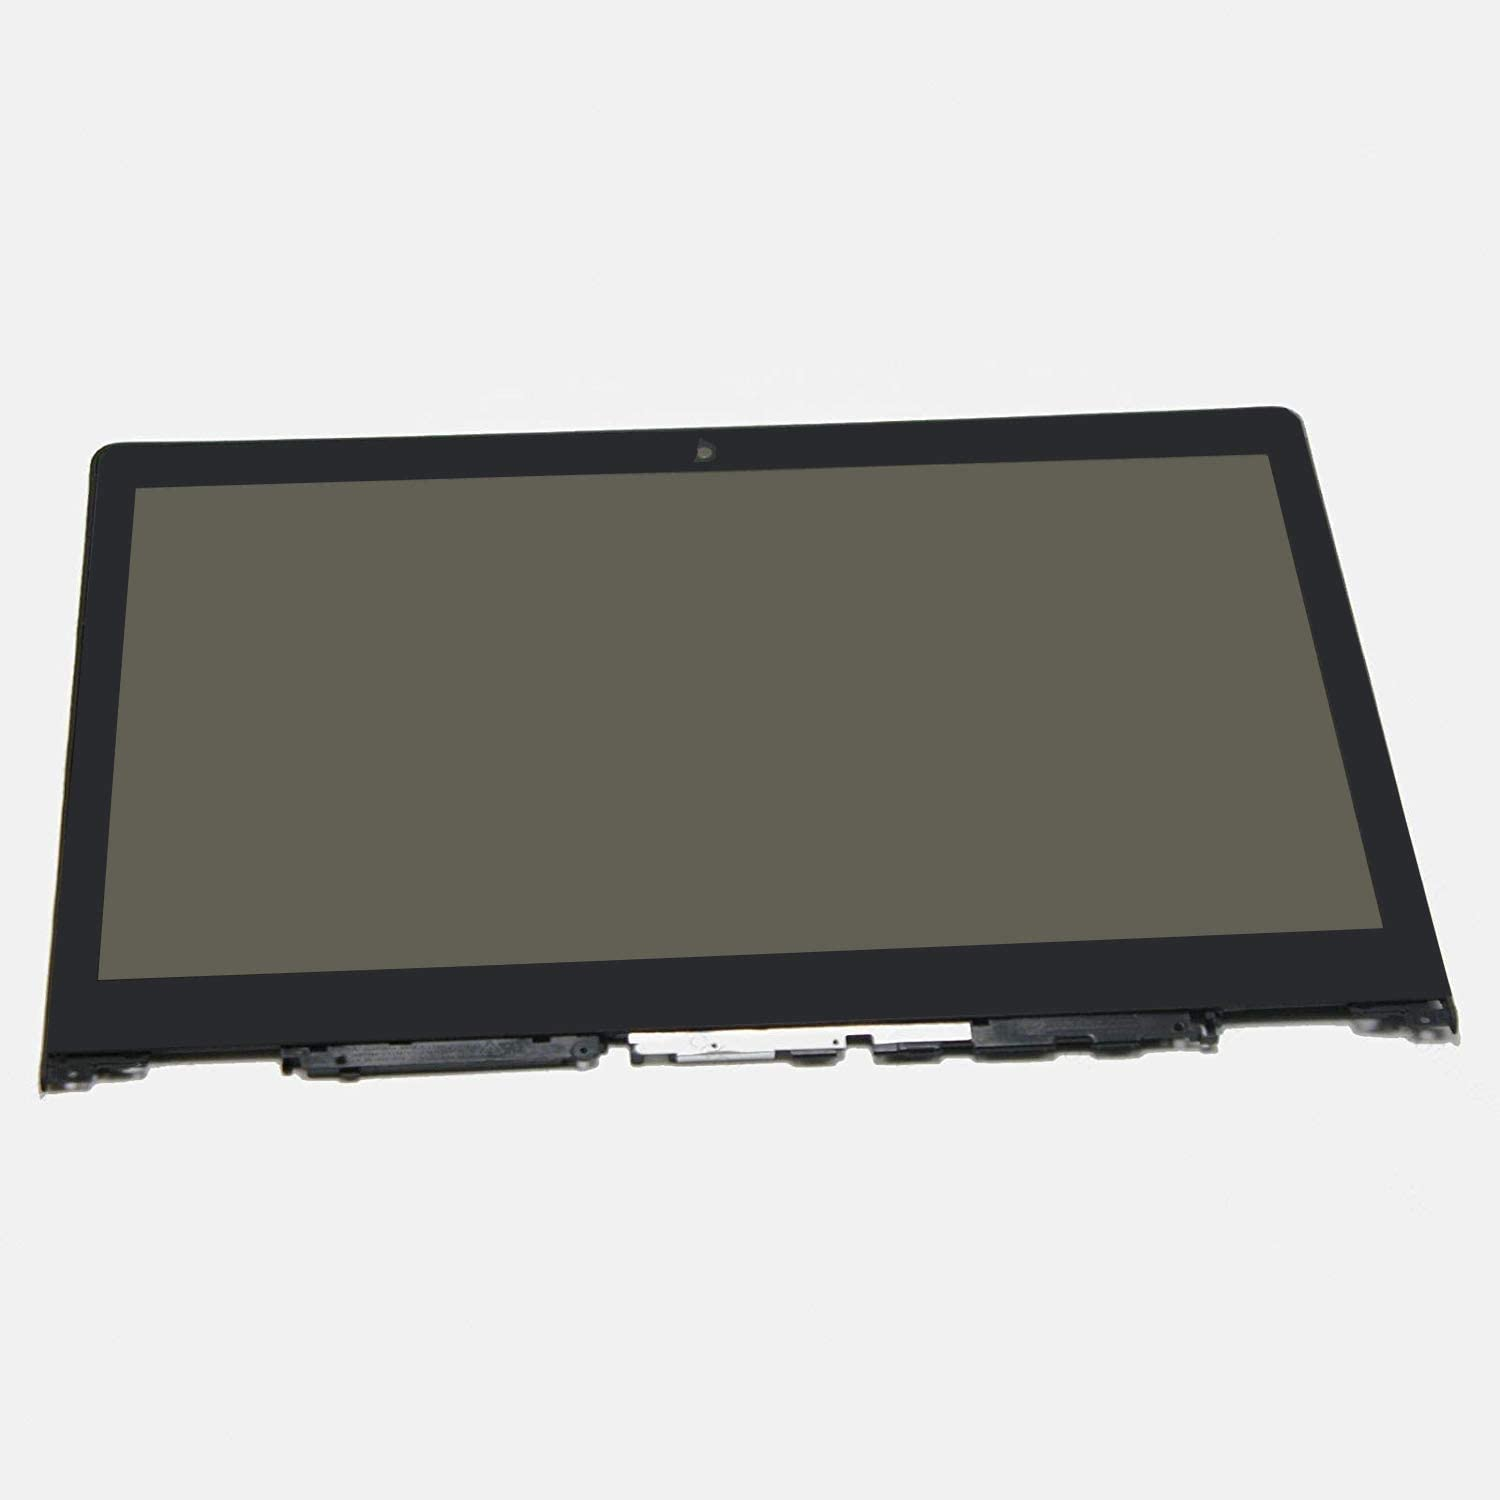 Bblon 14'' Touchscreen Digitizer LCD Display Assembly for Lenovo IdeaPad Yoga 3 14 80JH